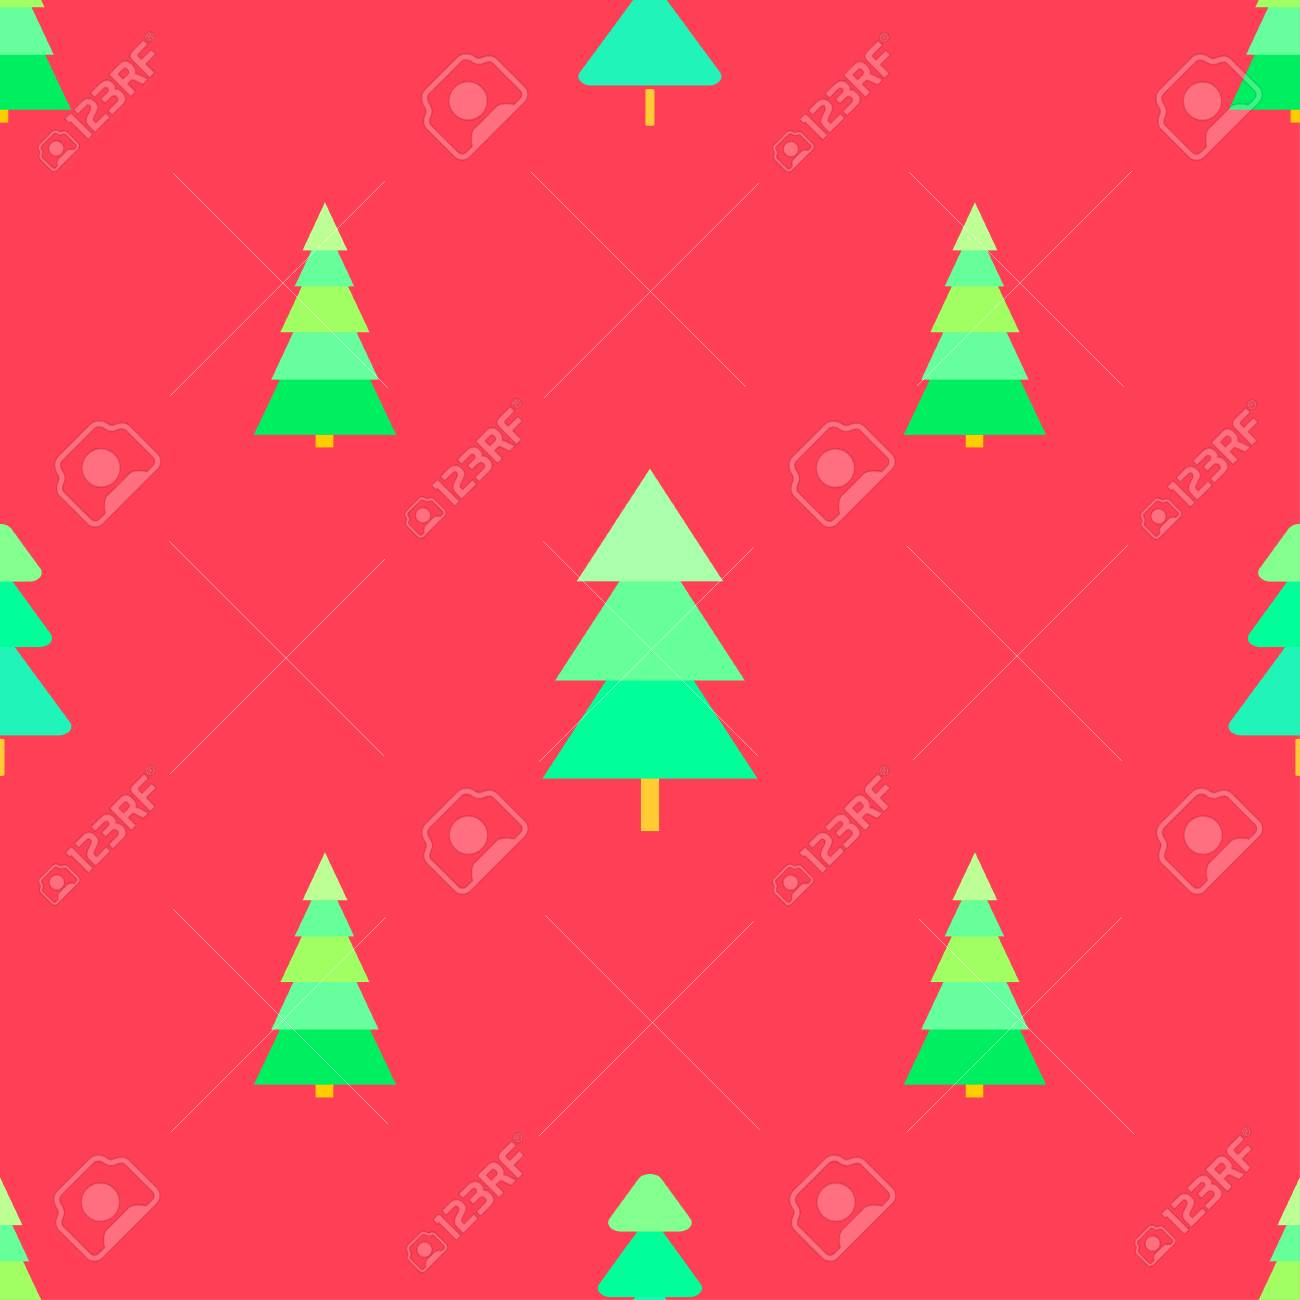 Seamless Pattern With Chrismas Trees Background Bright Texture Abstract Geometric Wallpaper